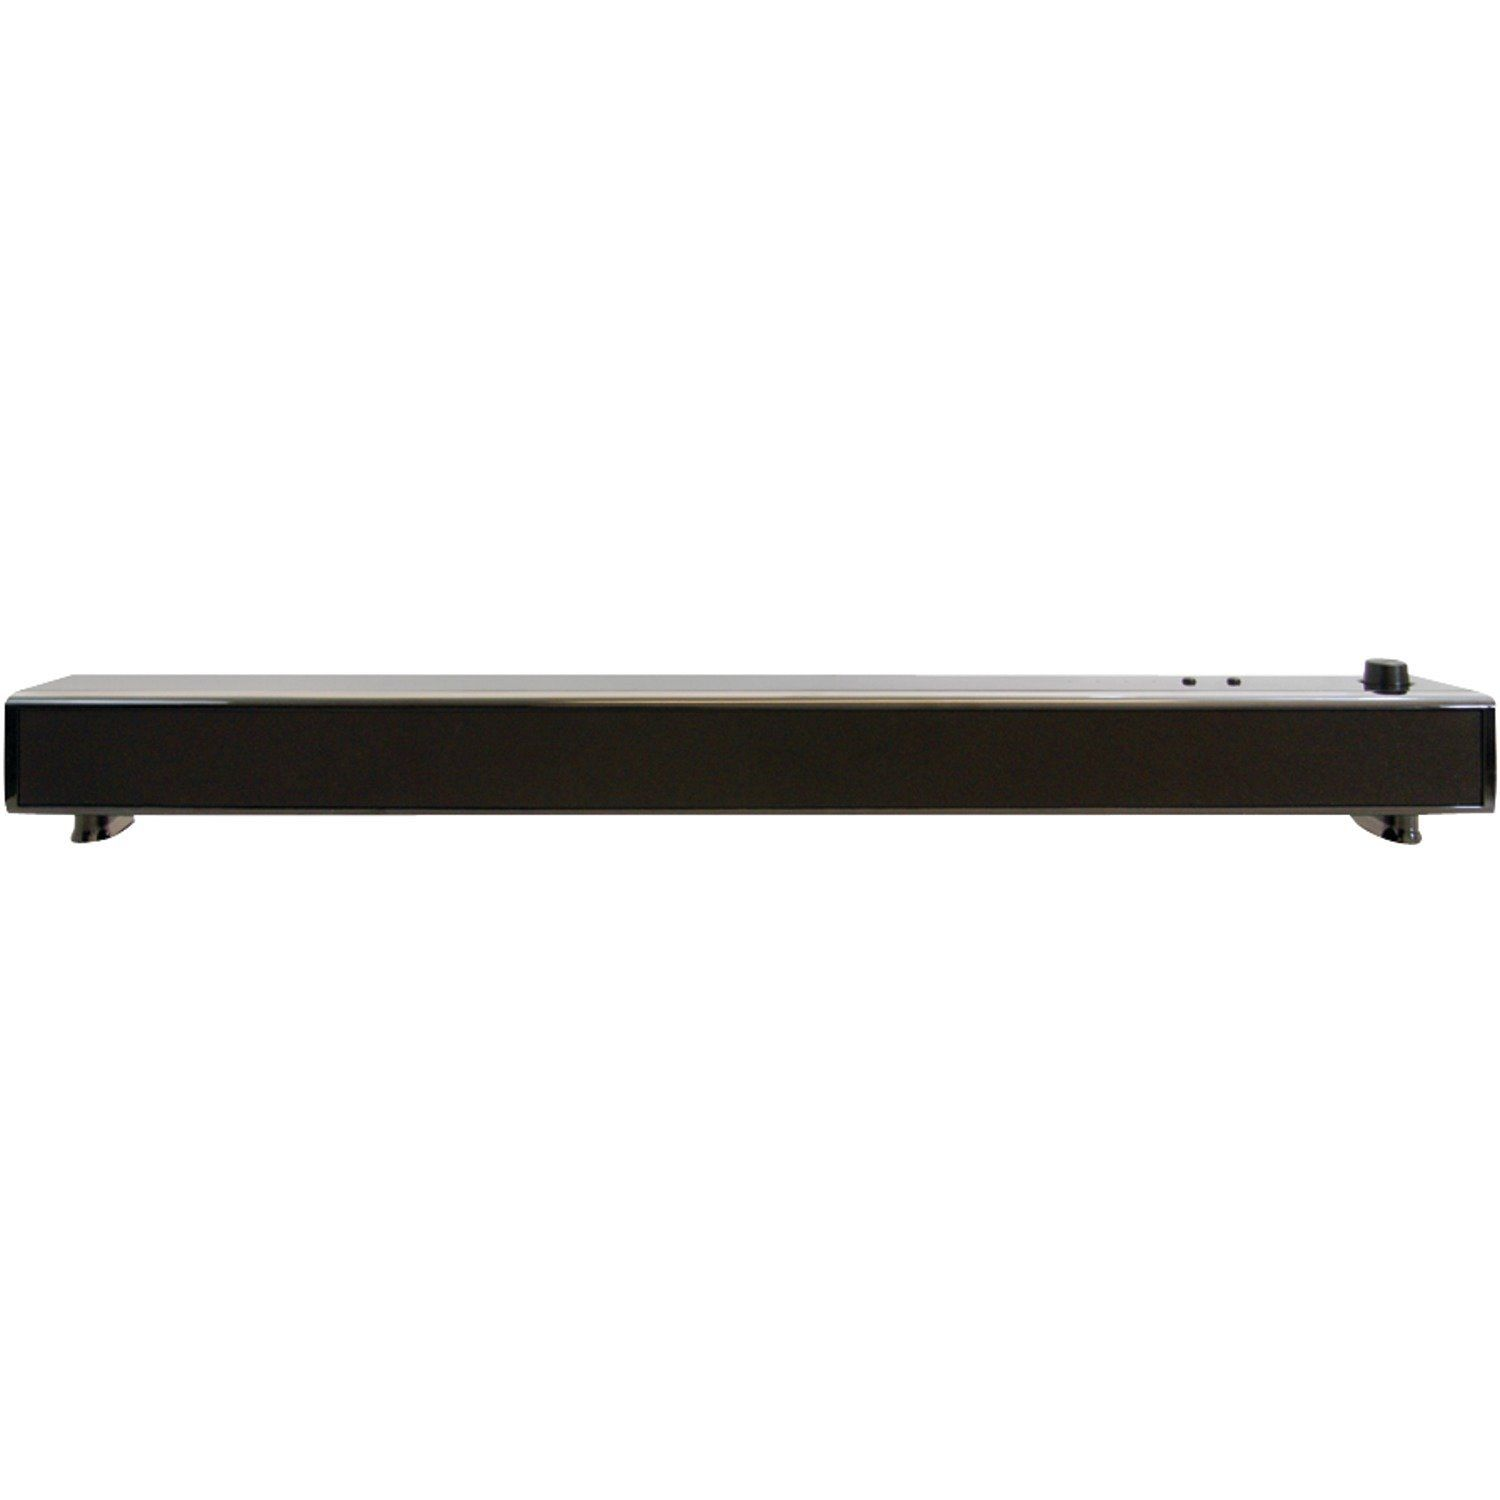 Sherwood S -5 Panoramic Soundbar with Bluetooth (Certified Refurbished) by Sherwood